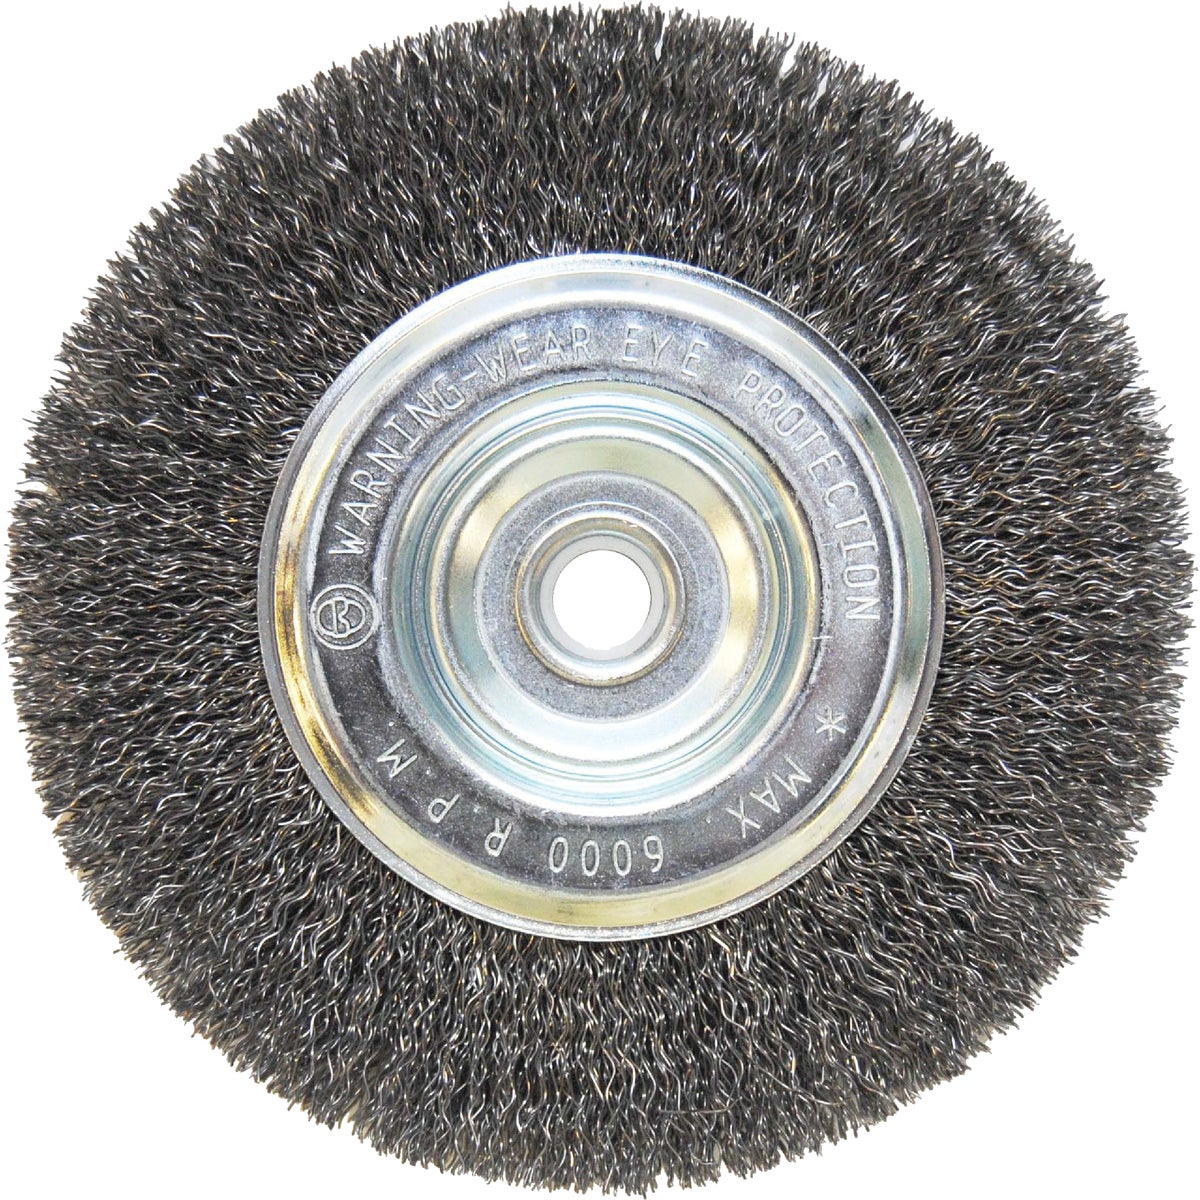 Weiler Vortec Pro Narrow Face Wire Wheel Brush, Round Hole, Carbon Steel, Cri...